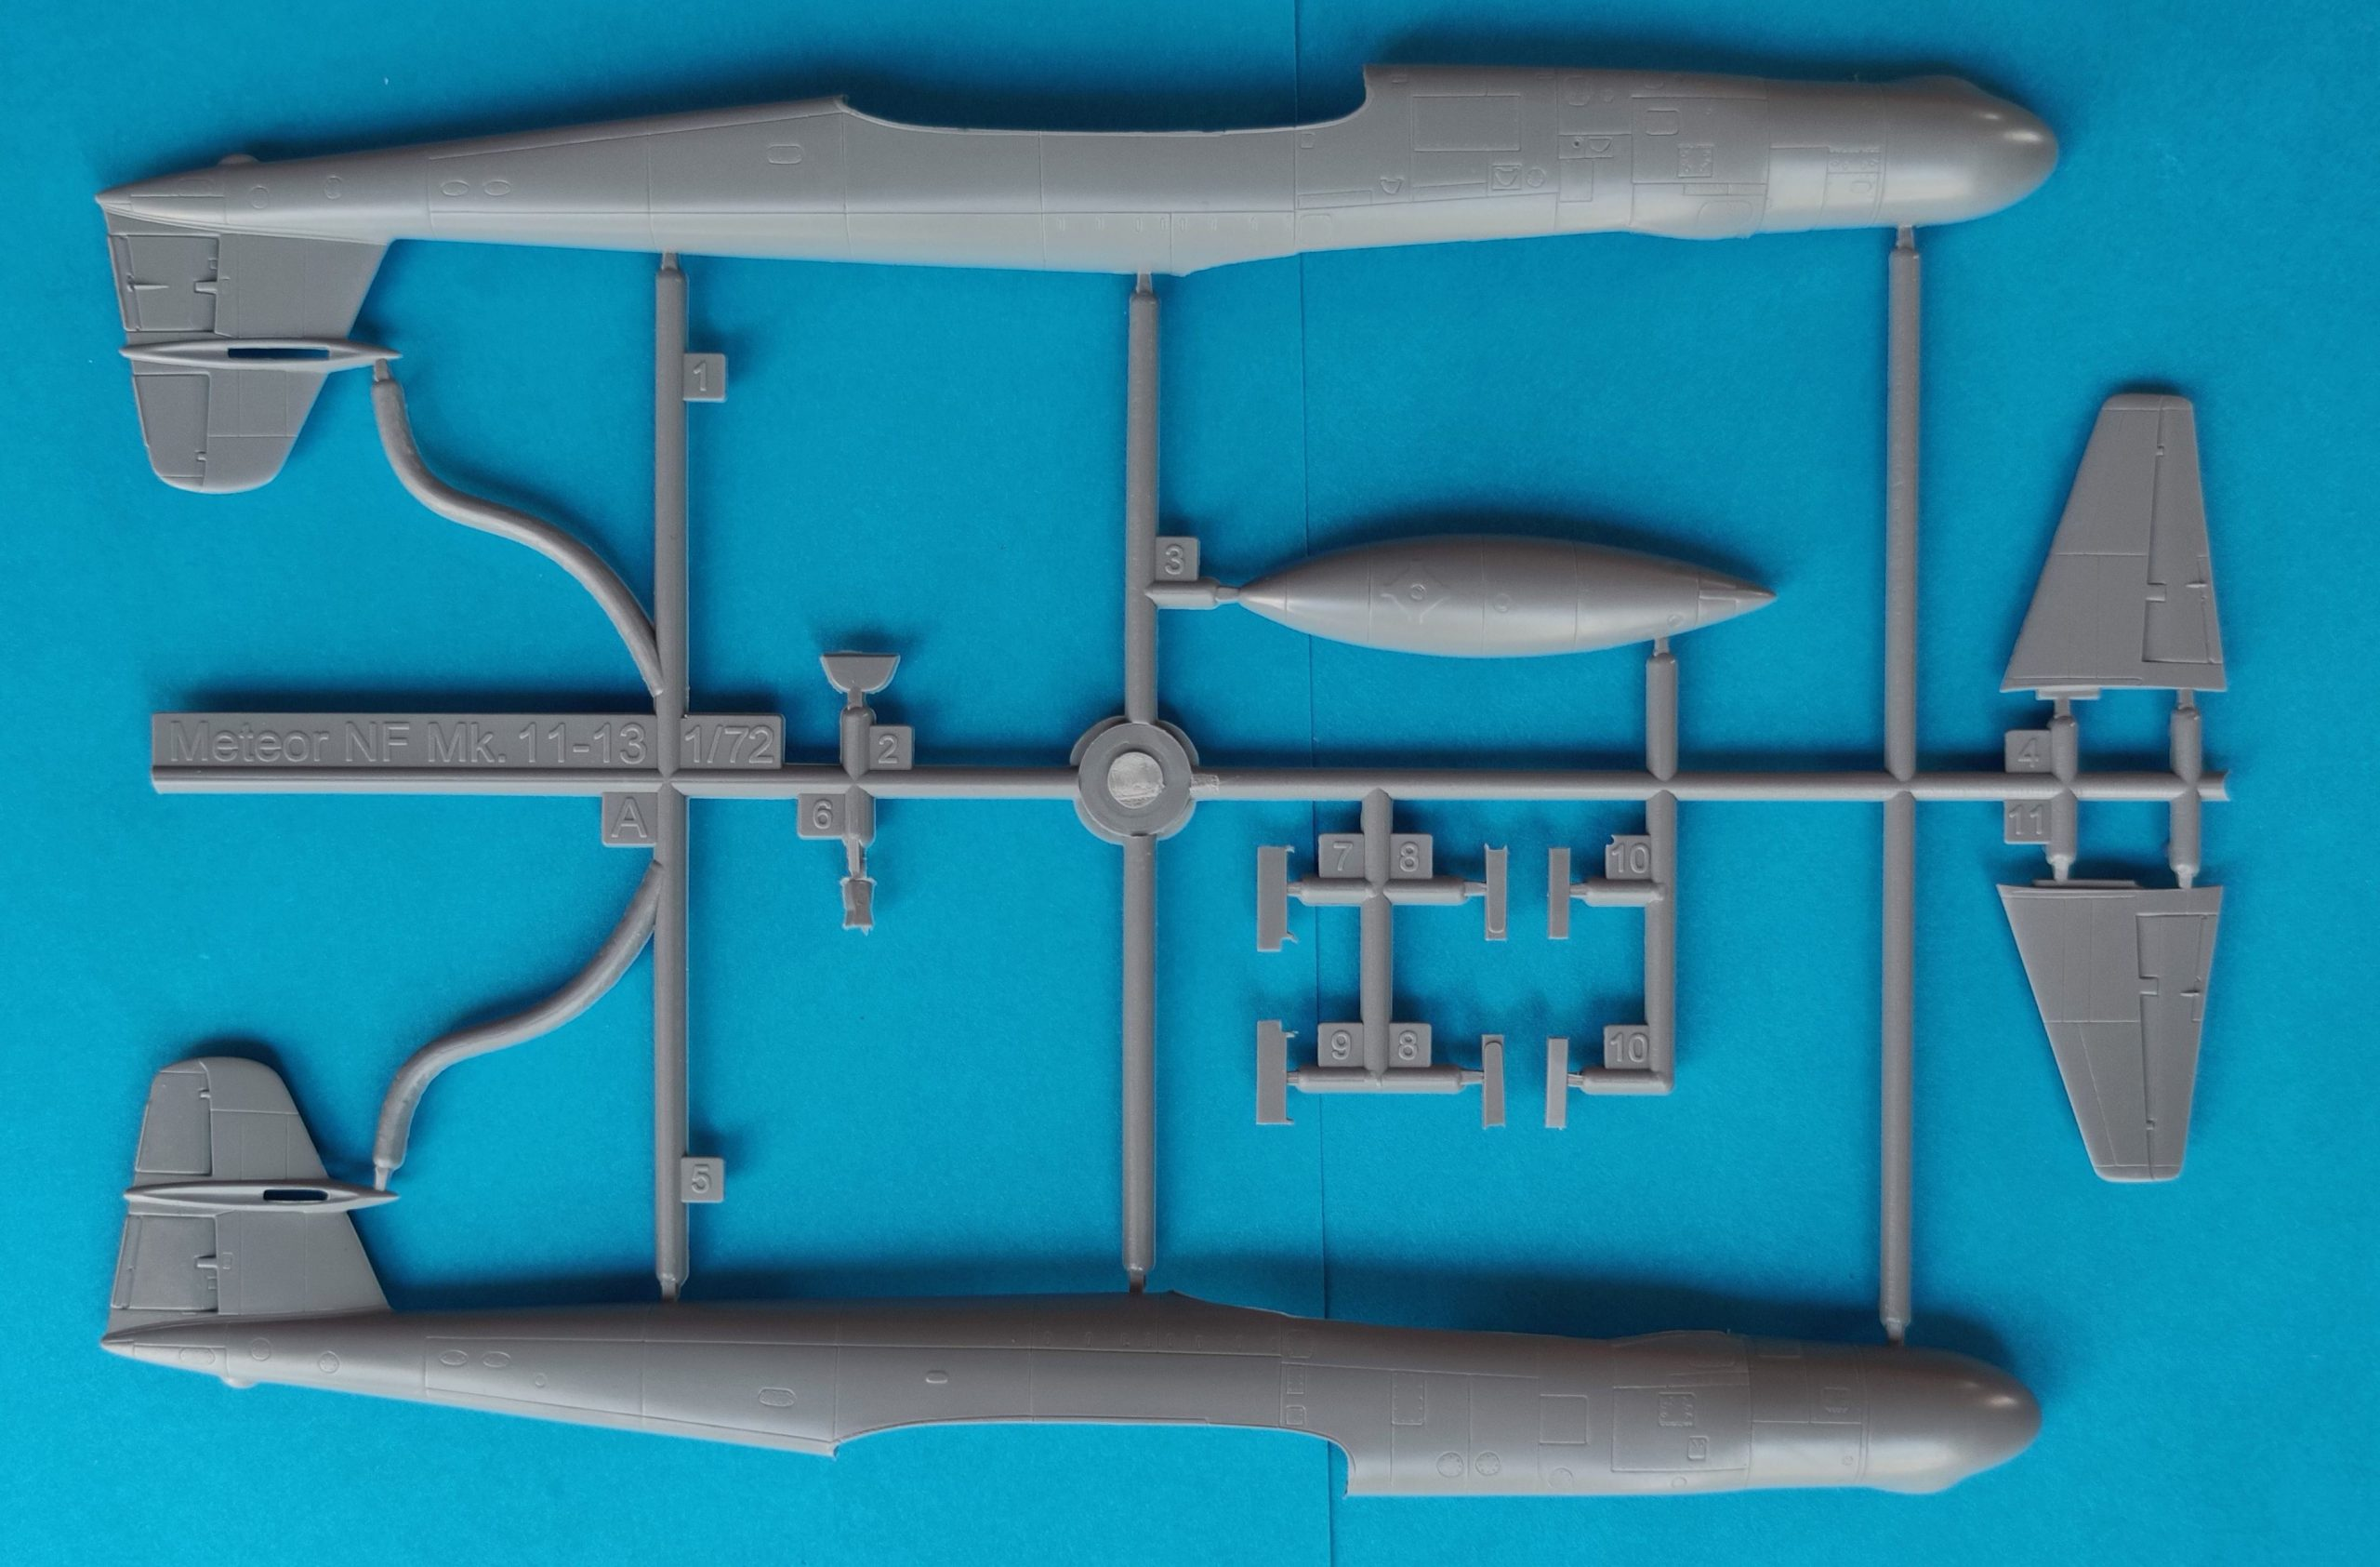 """MB_Meteor_Nf_MK11_Nato2-scaled Gloster A.W. Meteor NF Mk.1 """"Nato Users"""" in 1:72 von Special Hobby # 72358"""